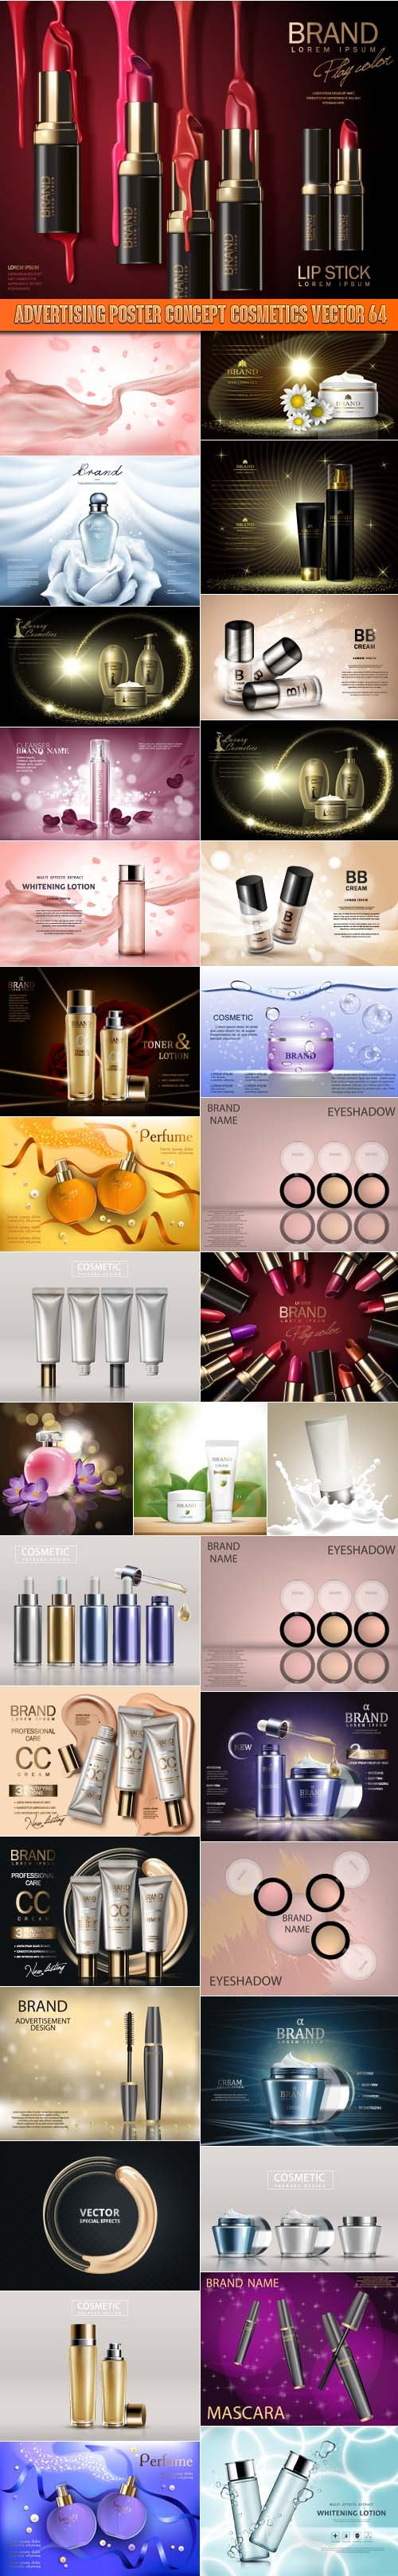 Advertising Poster Concept Cosmetics vector 64